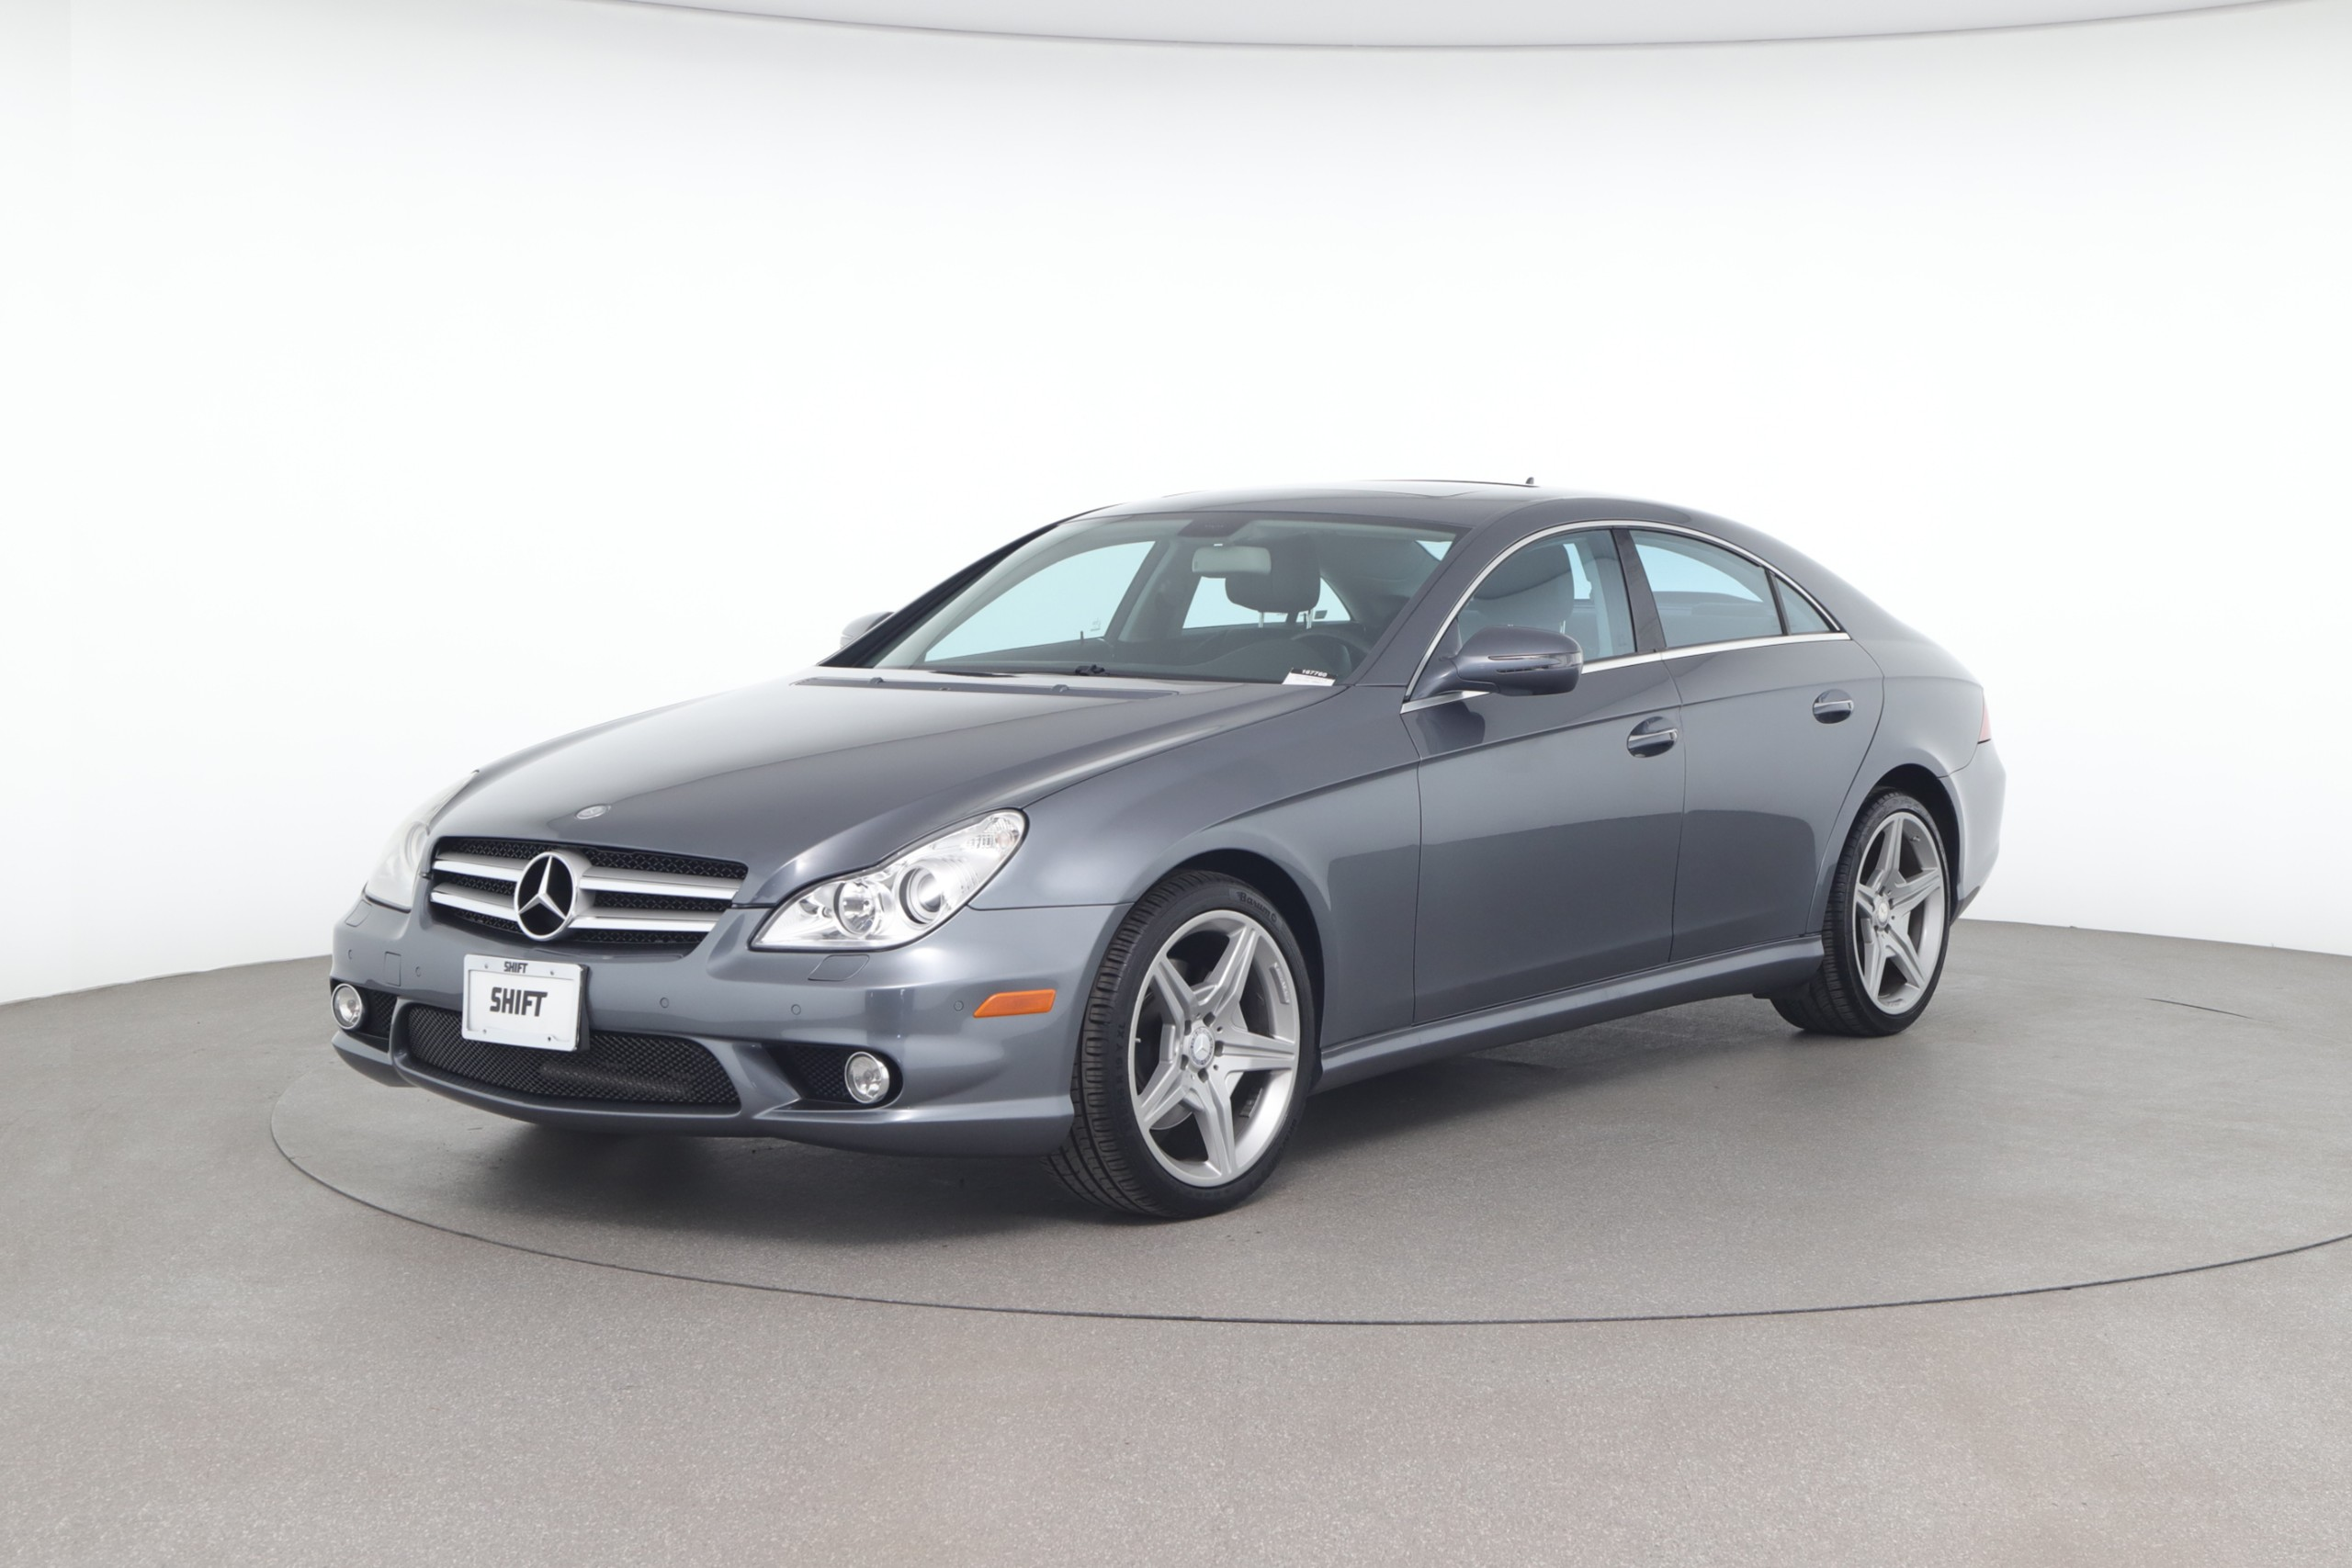 2011 Mercedes-Benz CLS 550 (from $21,500)